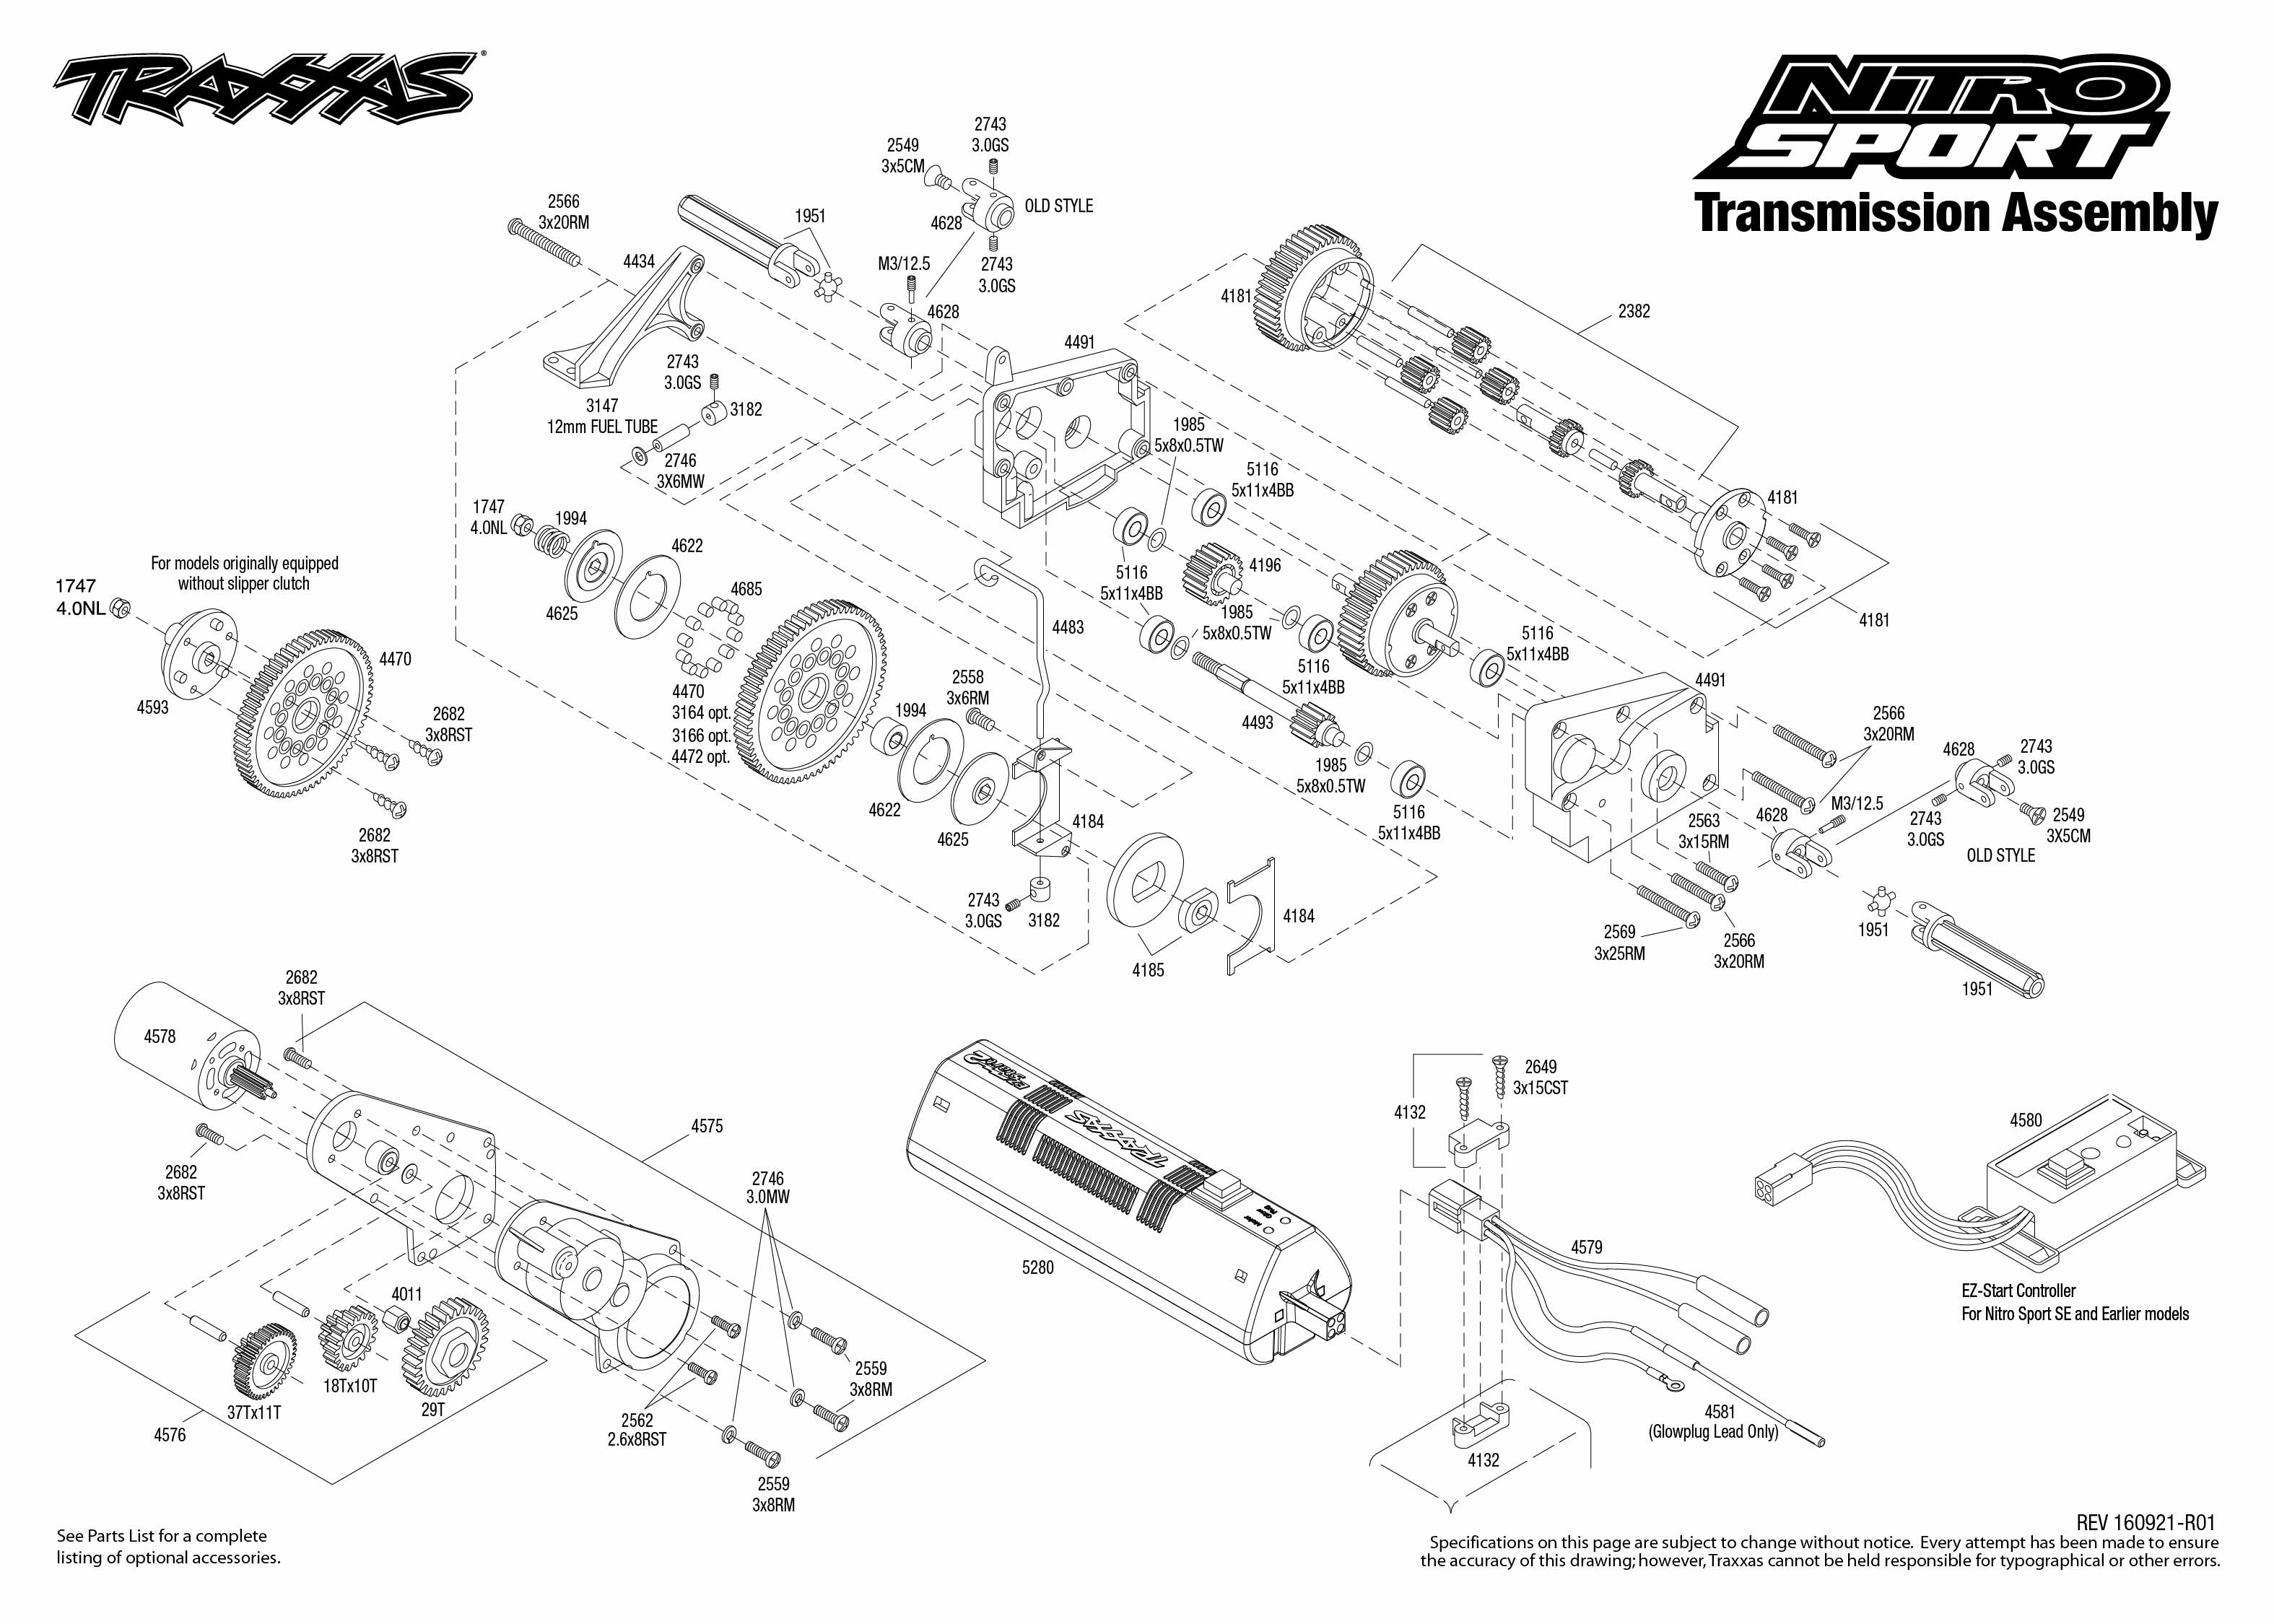 Nitro Sport 1 Transmission Assembly Exploded View